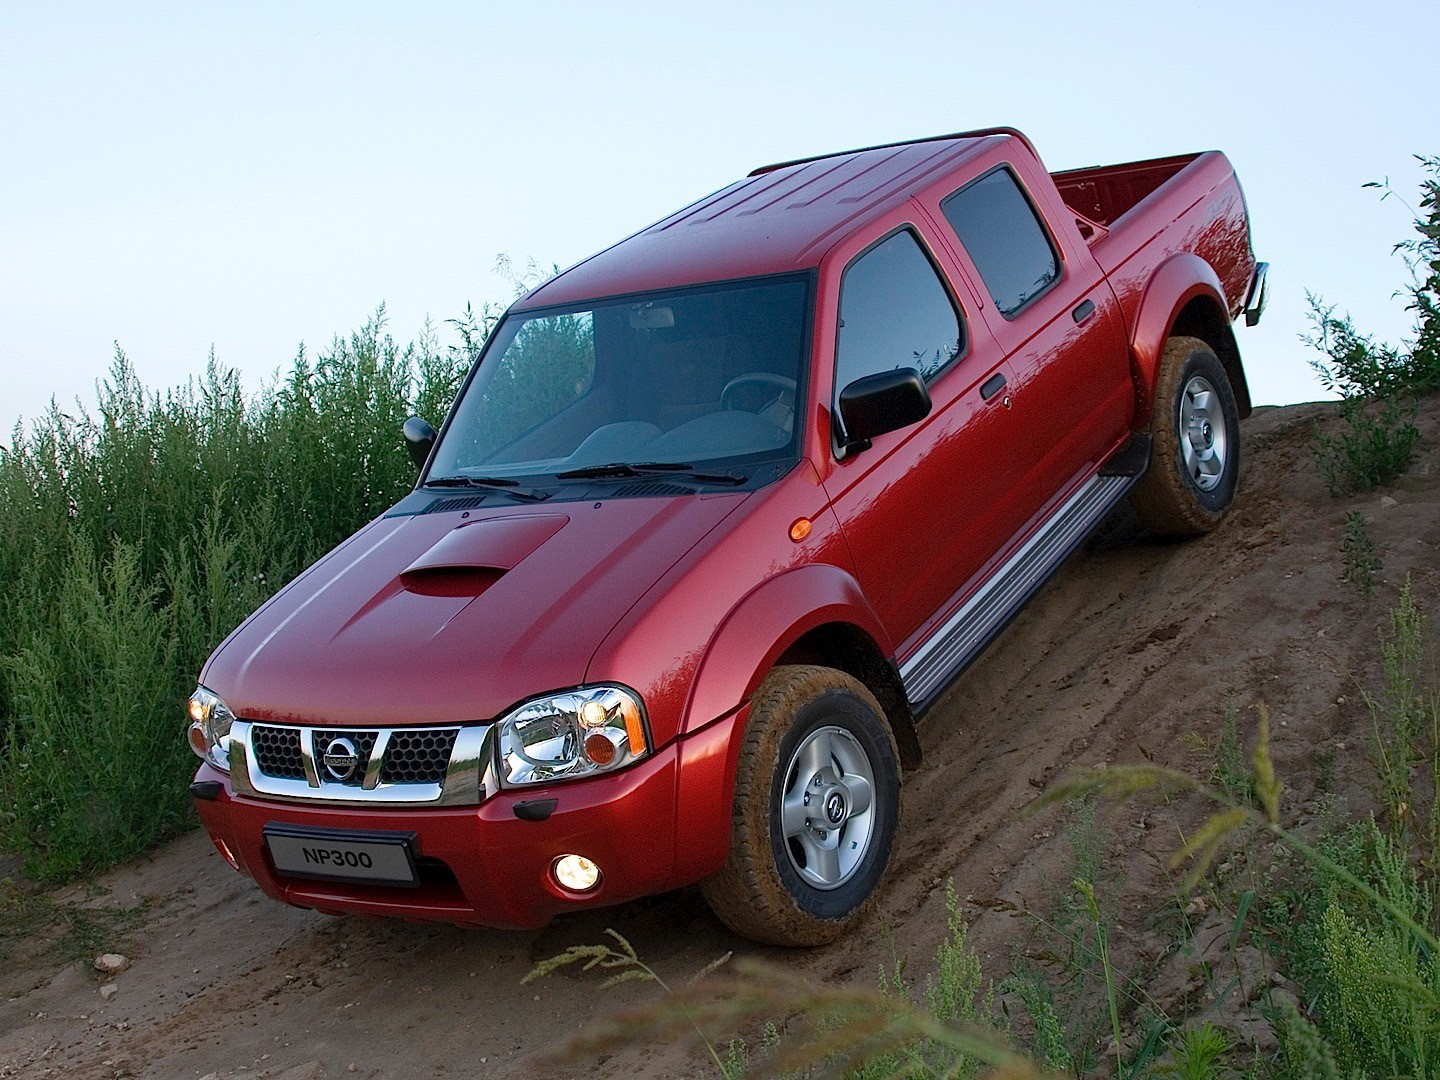 300 Hp Cars >> NISSAN NP300 Pickup Double Cab specs & photos - 2008, 2009, 2010, 2011, 2012, 2013, 2014 ...